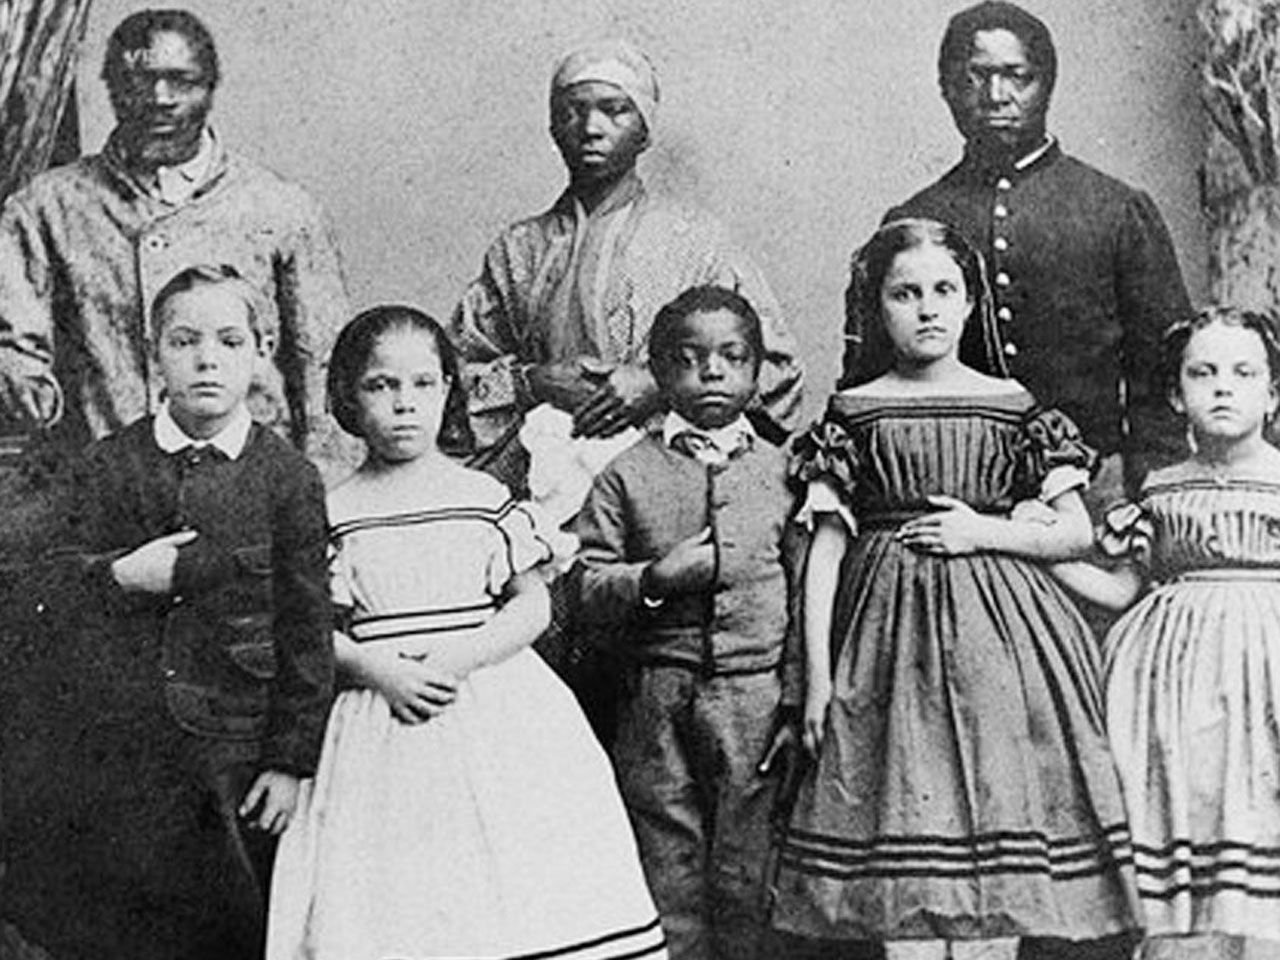 frederick douglass as a young child - Google Search ...